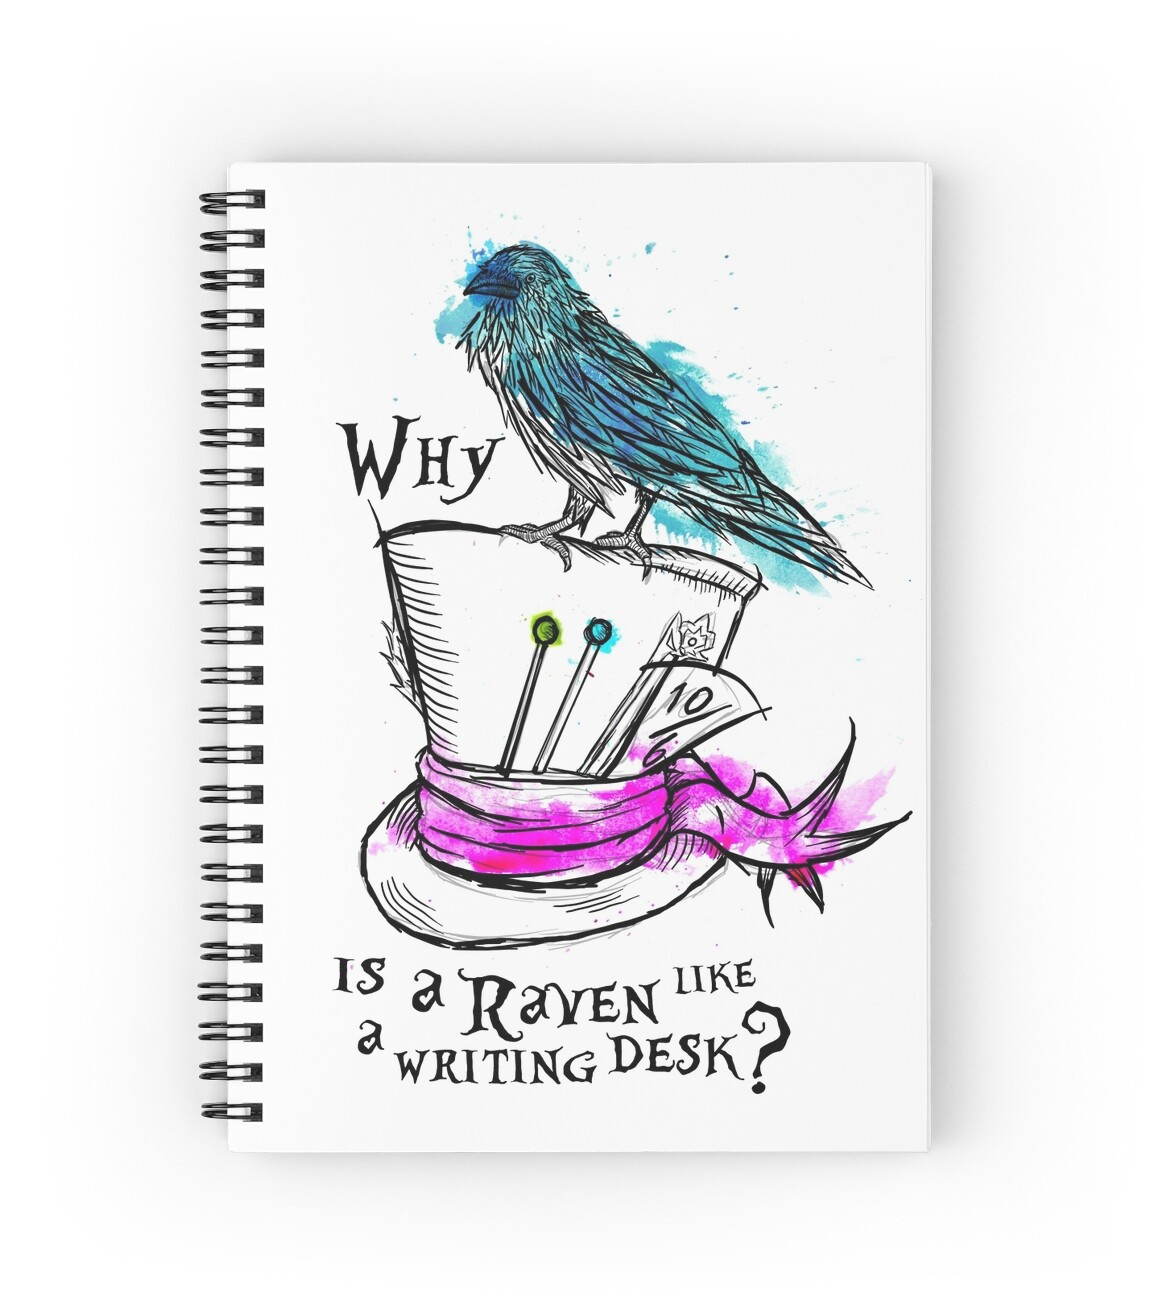 raven is like a writing desk Find this pin and more on {ft} why is a raven like a writing desk by izzy alice in wonderland (film, an all-star cast paramount production as other film adaptations, it included elements of both aiw and tlg.